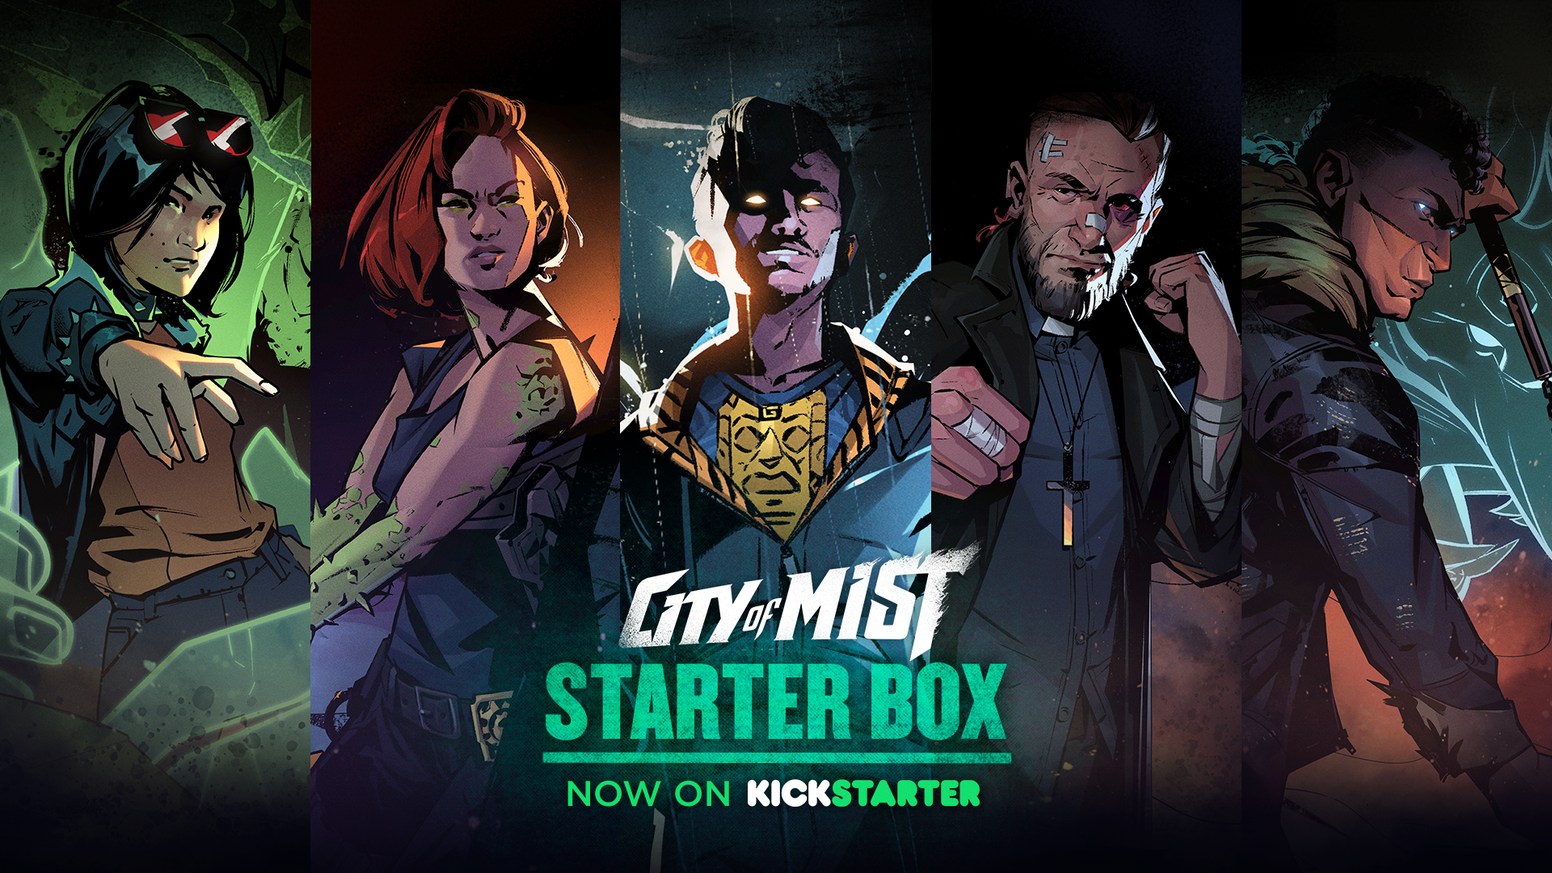 Learn to roleplay in the gritty cinematic universe of City of Mist, where myths and legends become comic book detectives and vigilantes